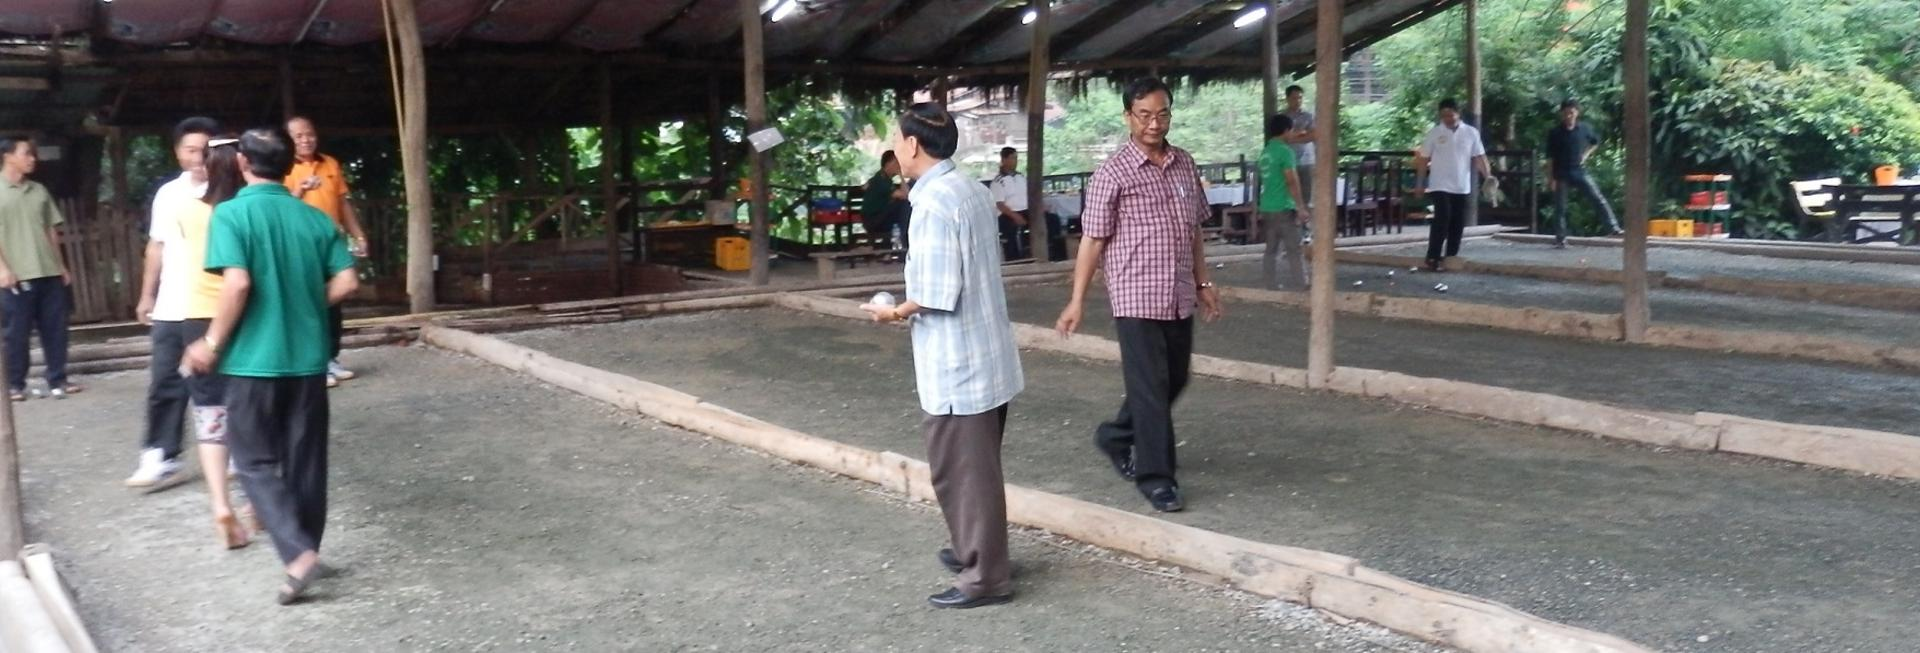 playing boules in laos